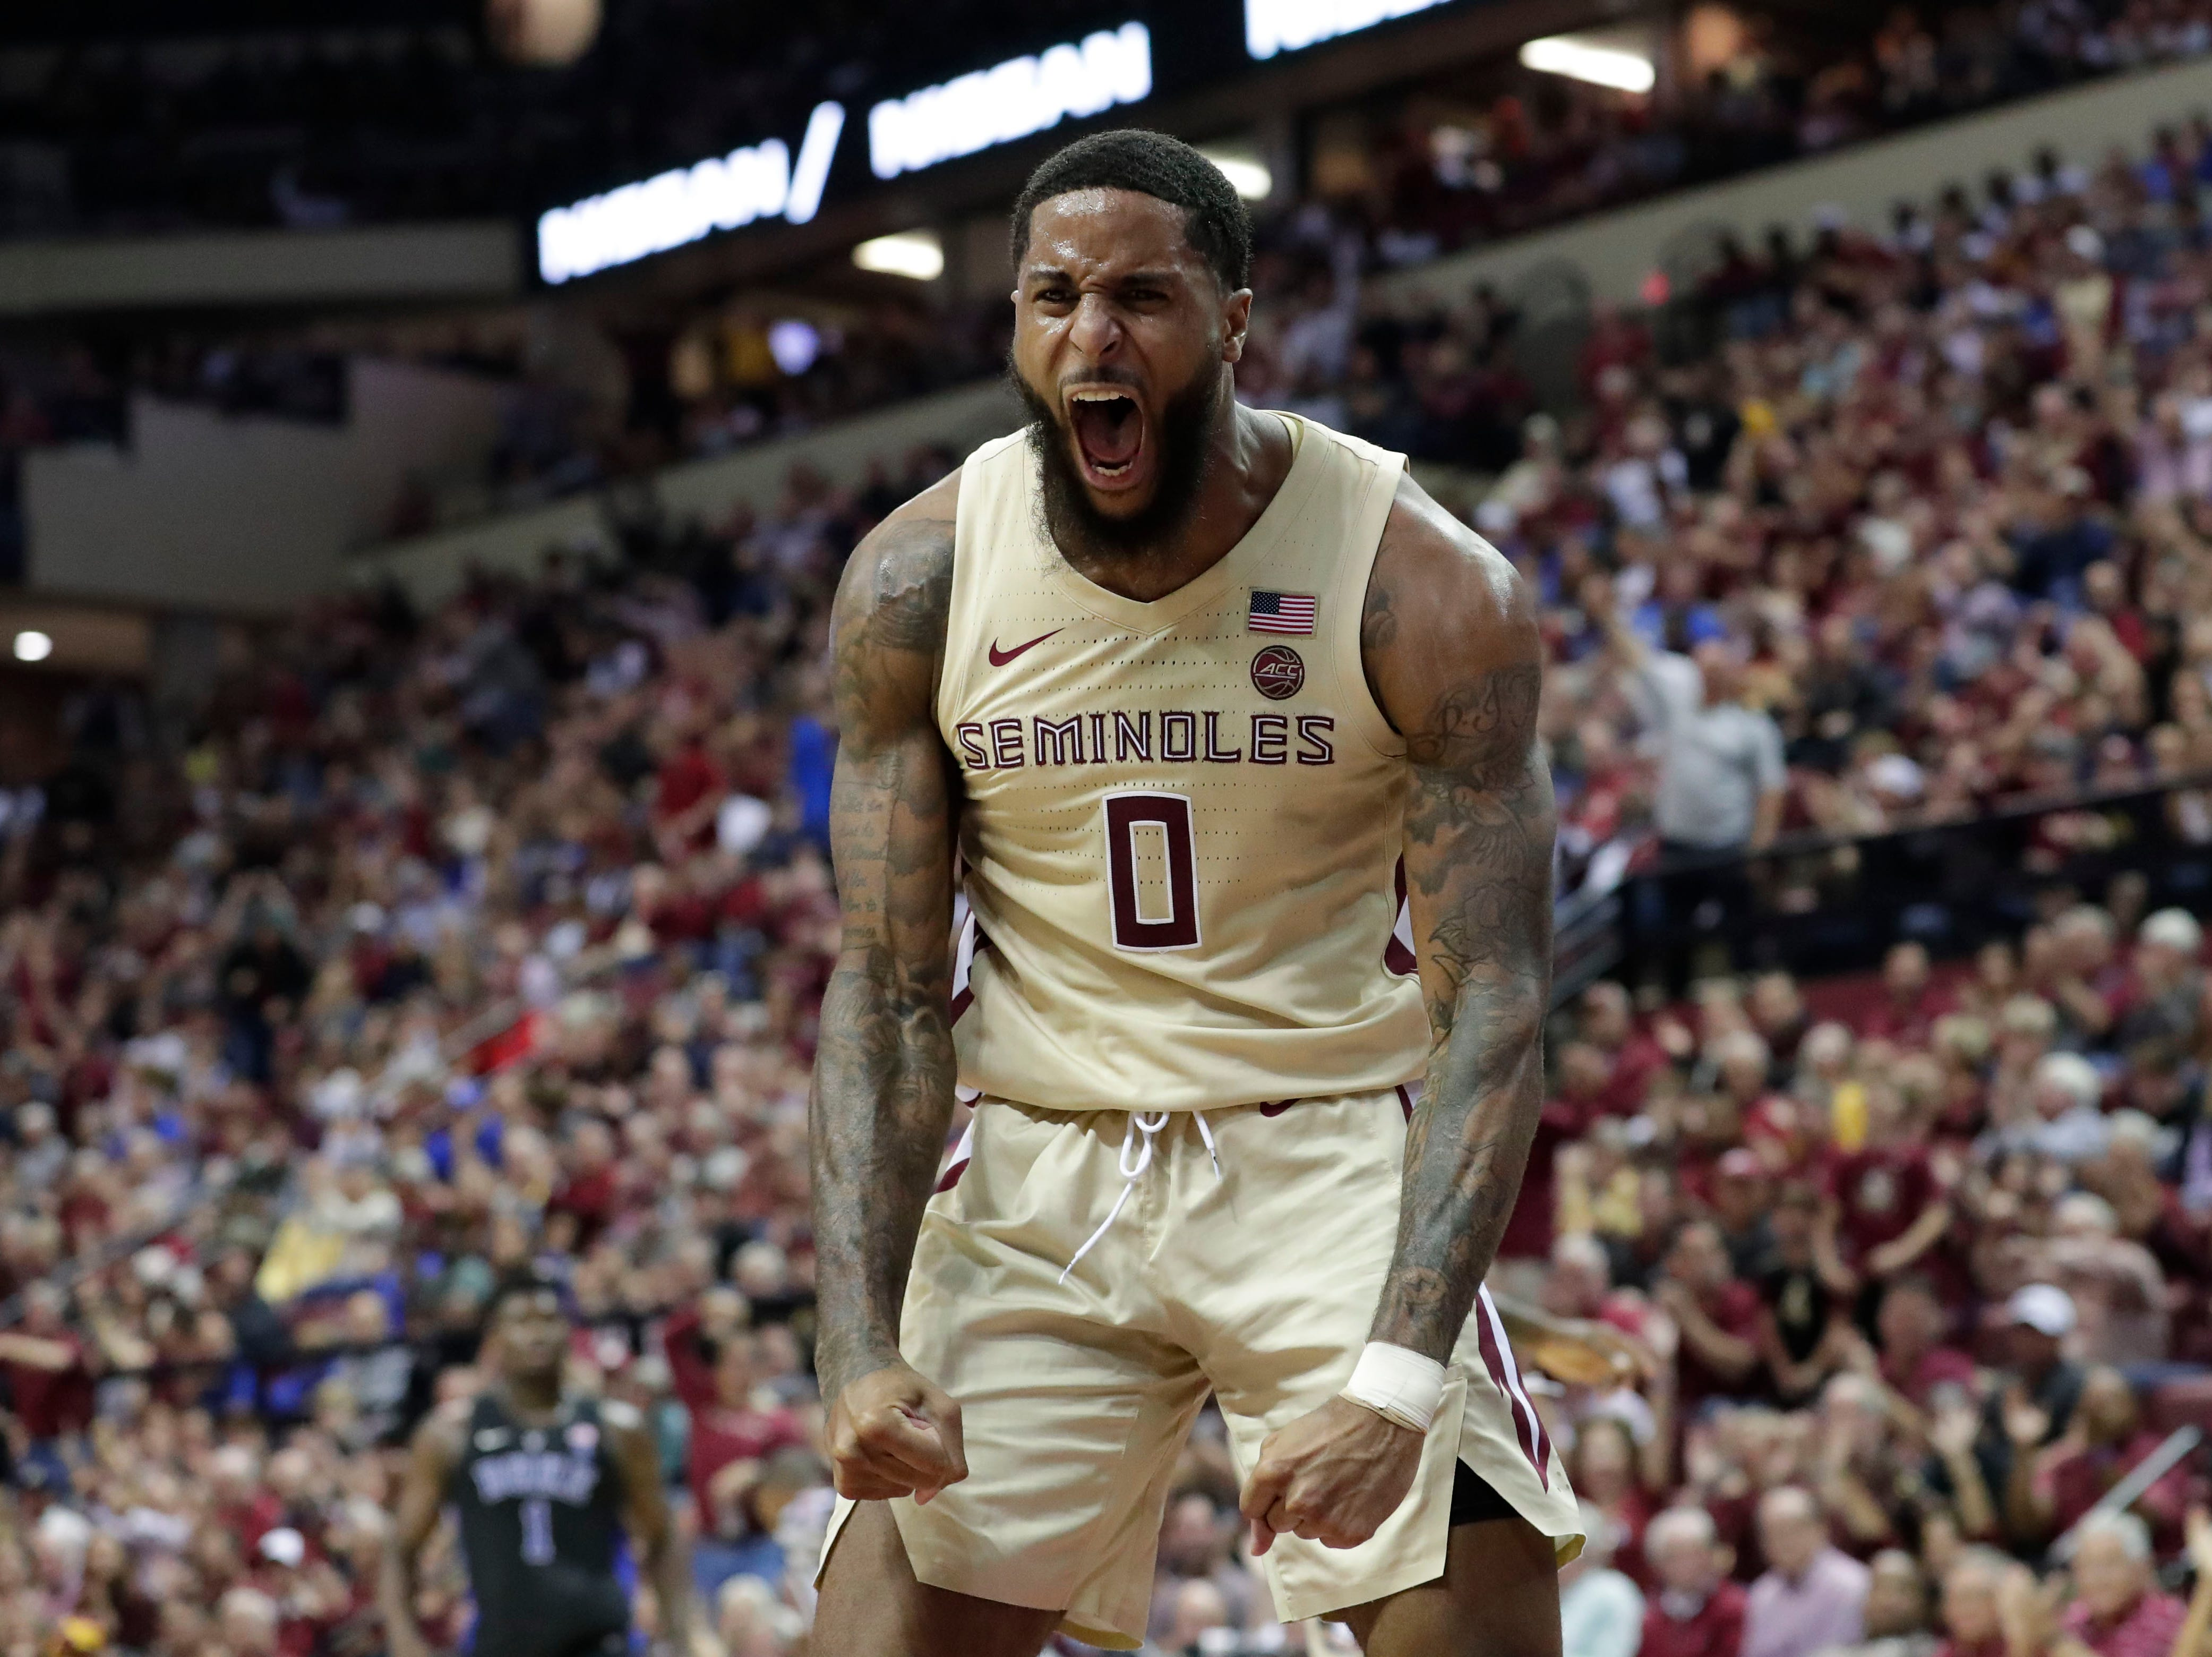 Ranked 13 in the ACC, the Florida State Seminoles host the number 1 team, the Duke Blue Devils, at the Tucker Civic Center, Saturday, Jan. 12, 2019. Florida State Seminoles forward Phil Cofer (0) celebrates a dunk.